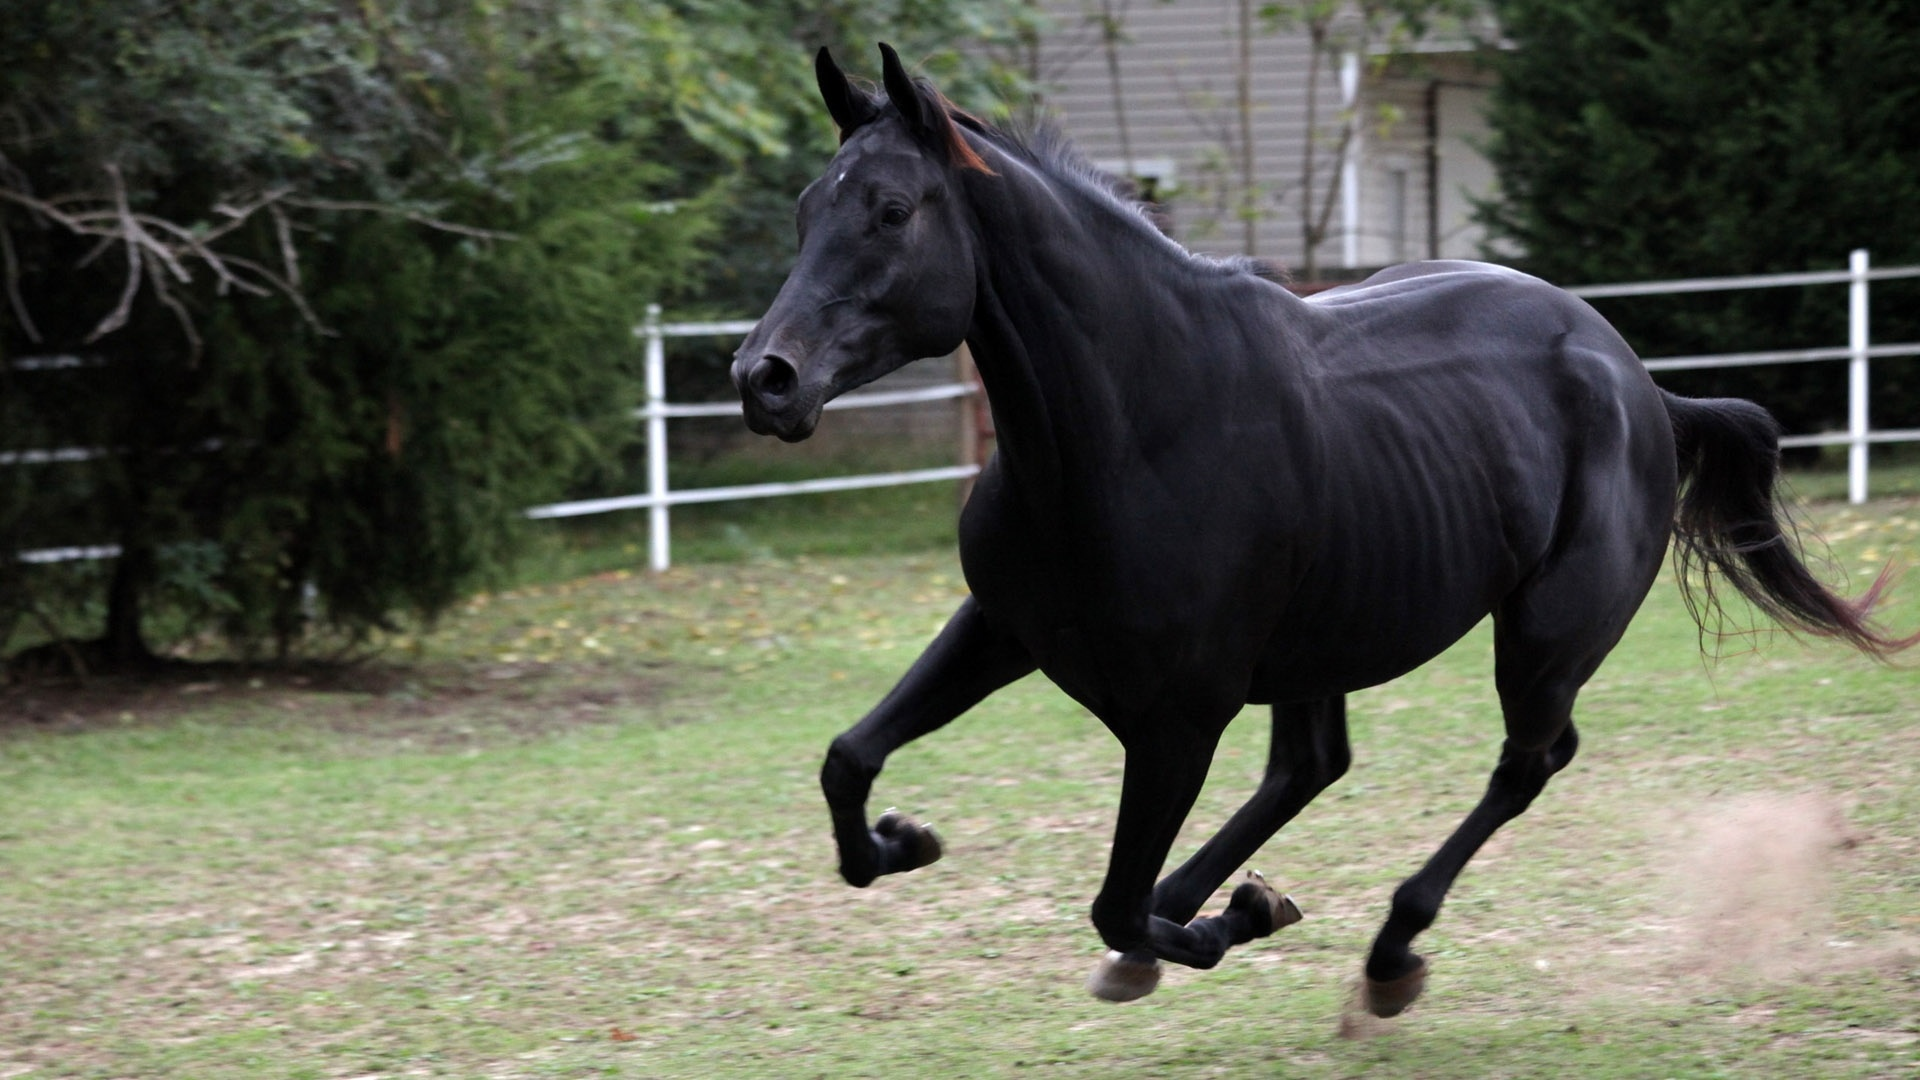 Black Horse background picture